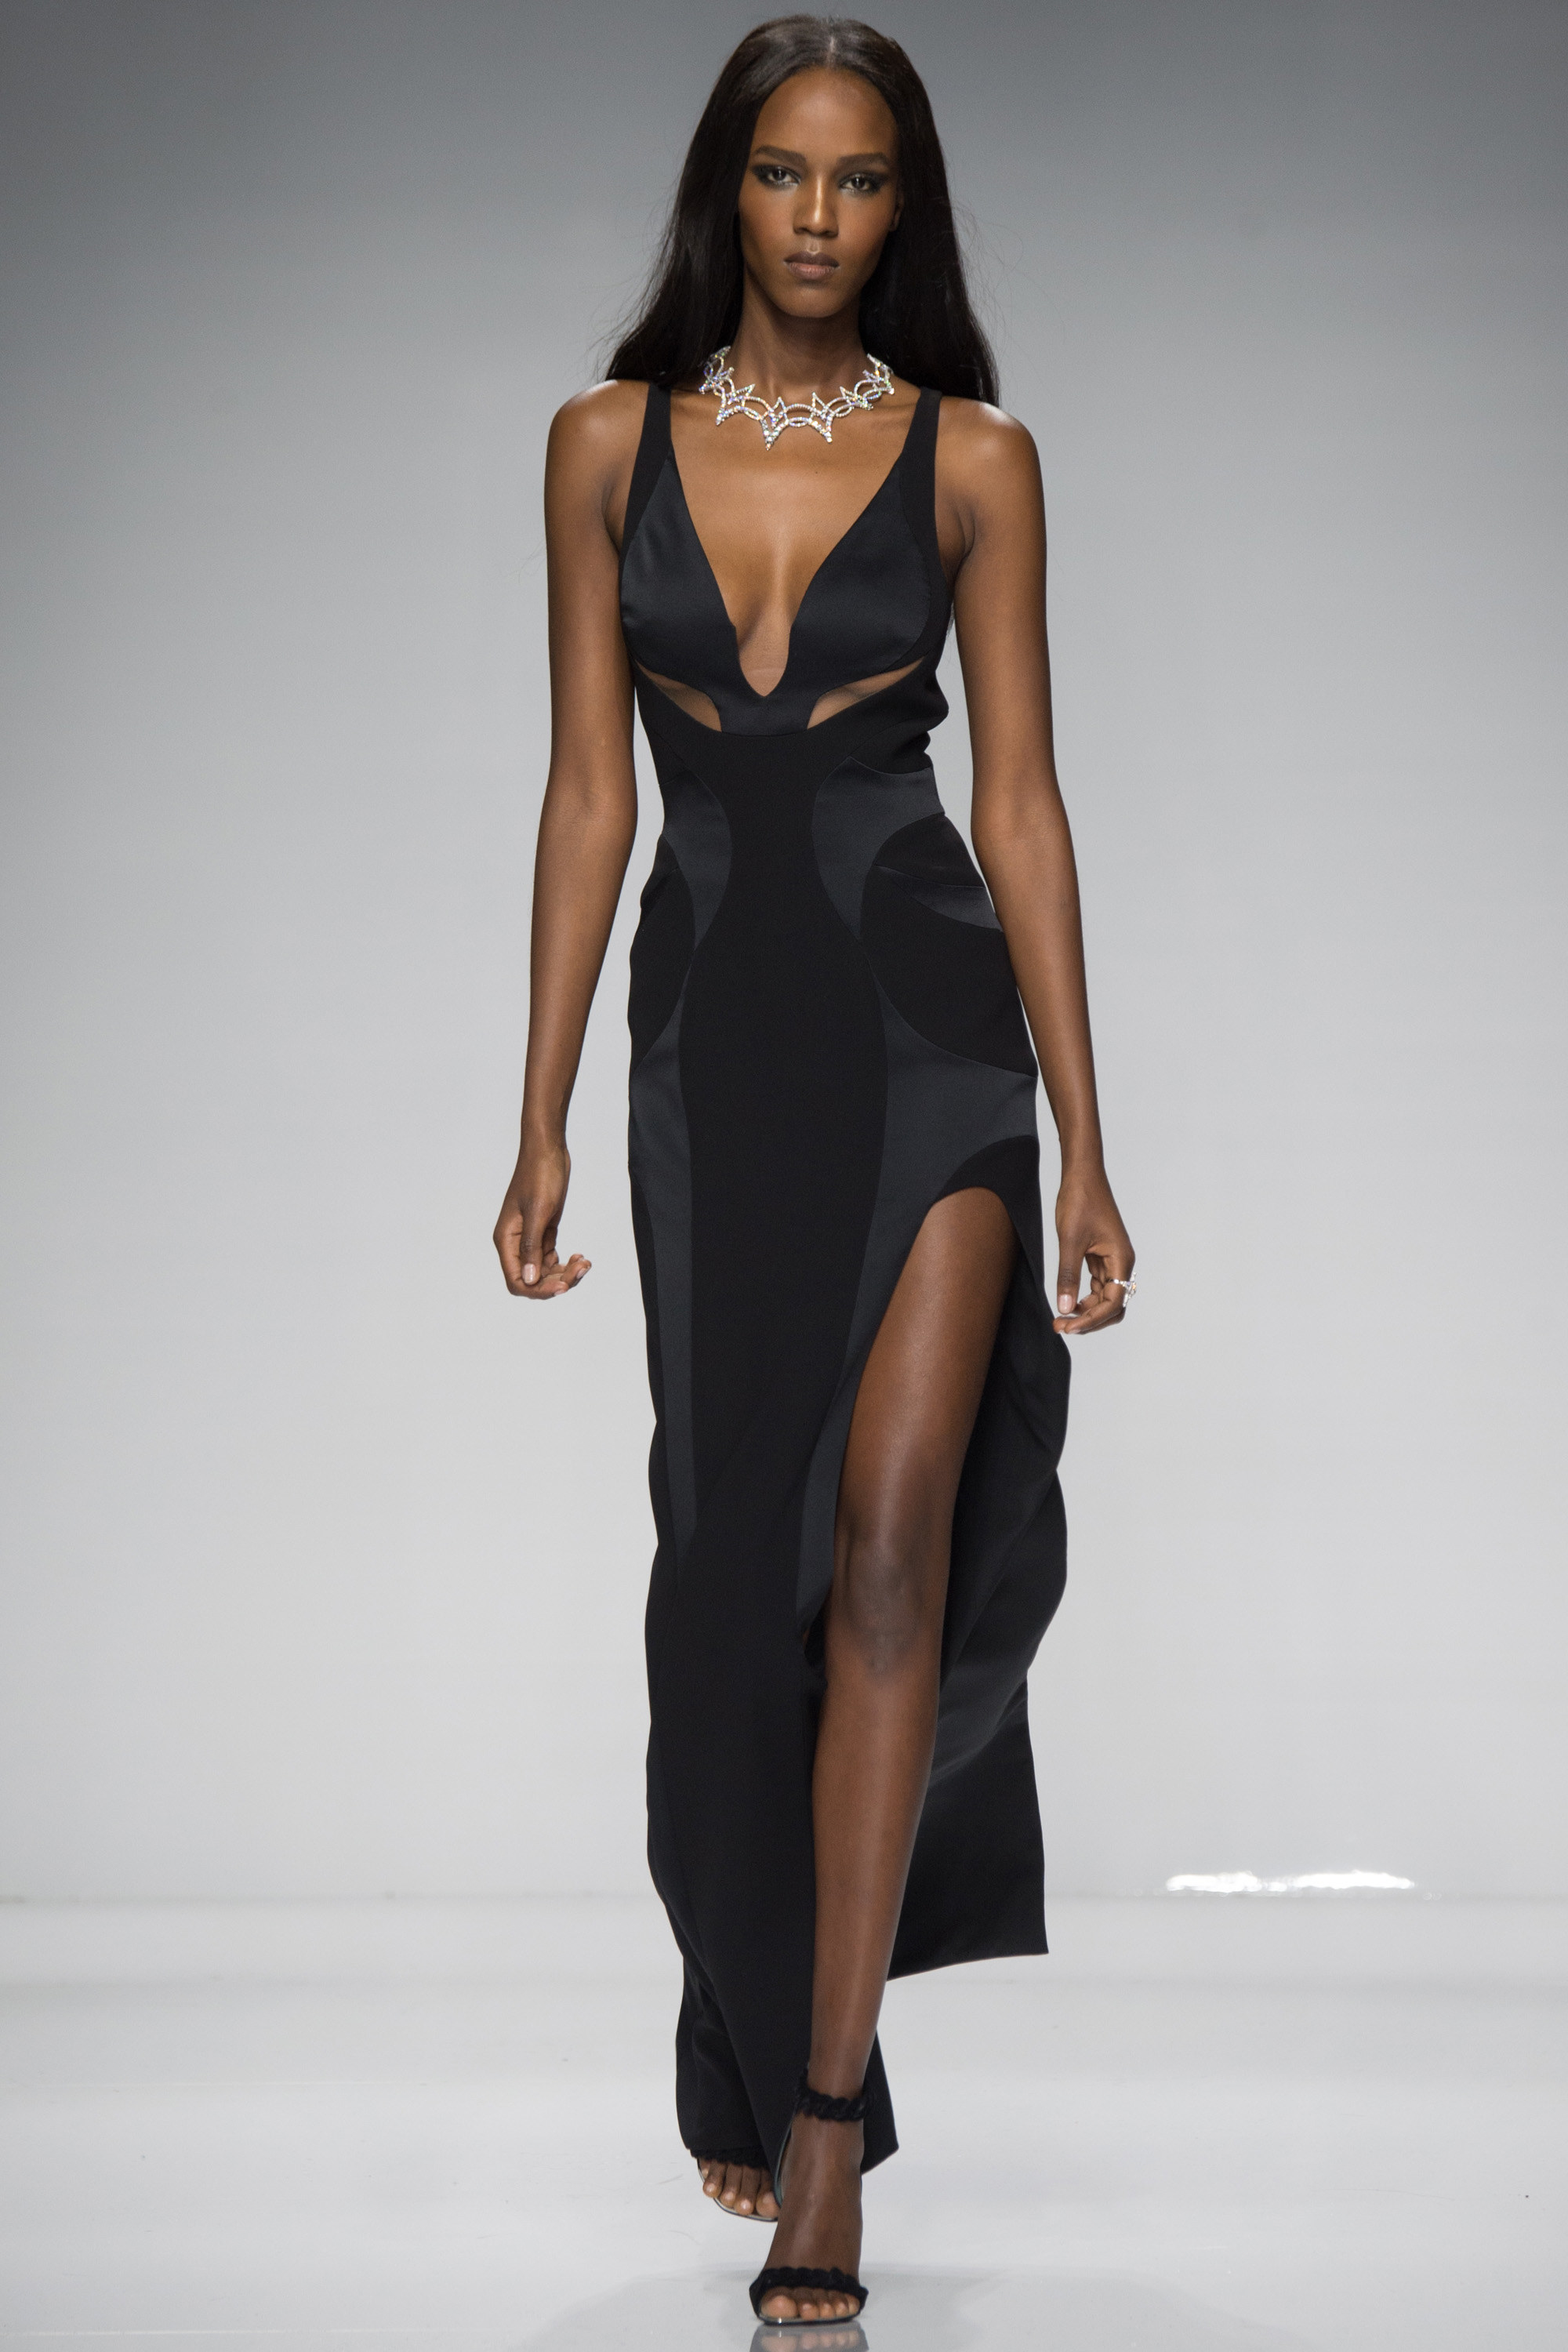 Wear Gown Evening Jackets Over